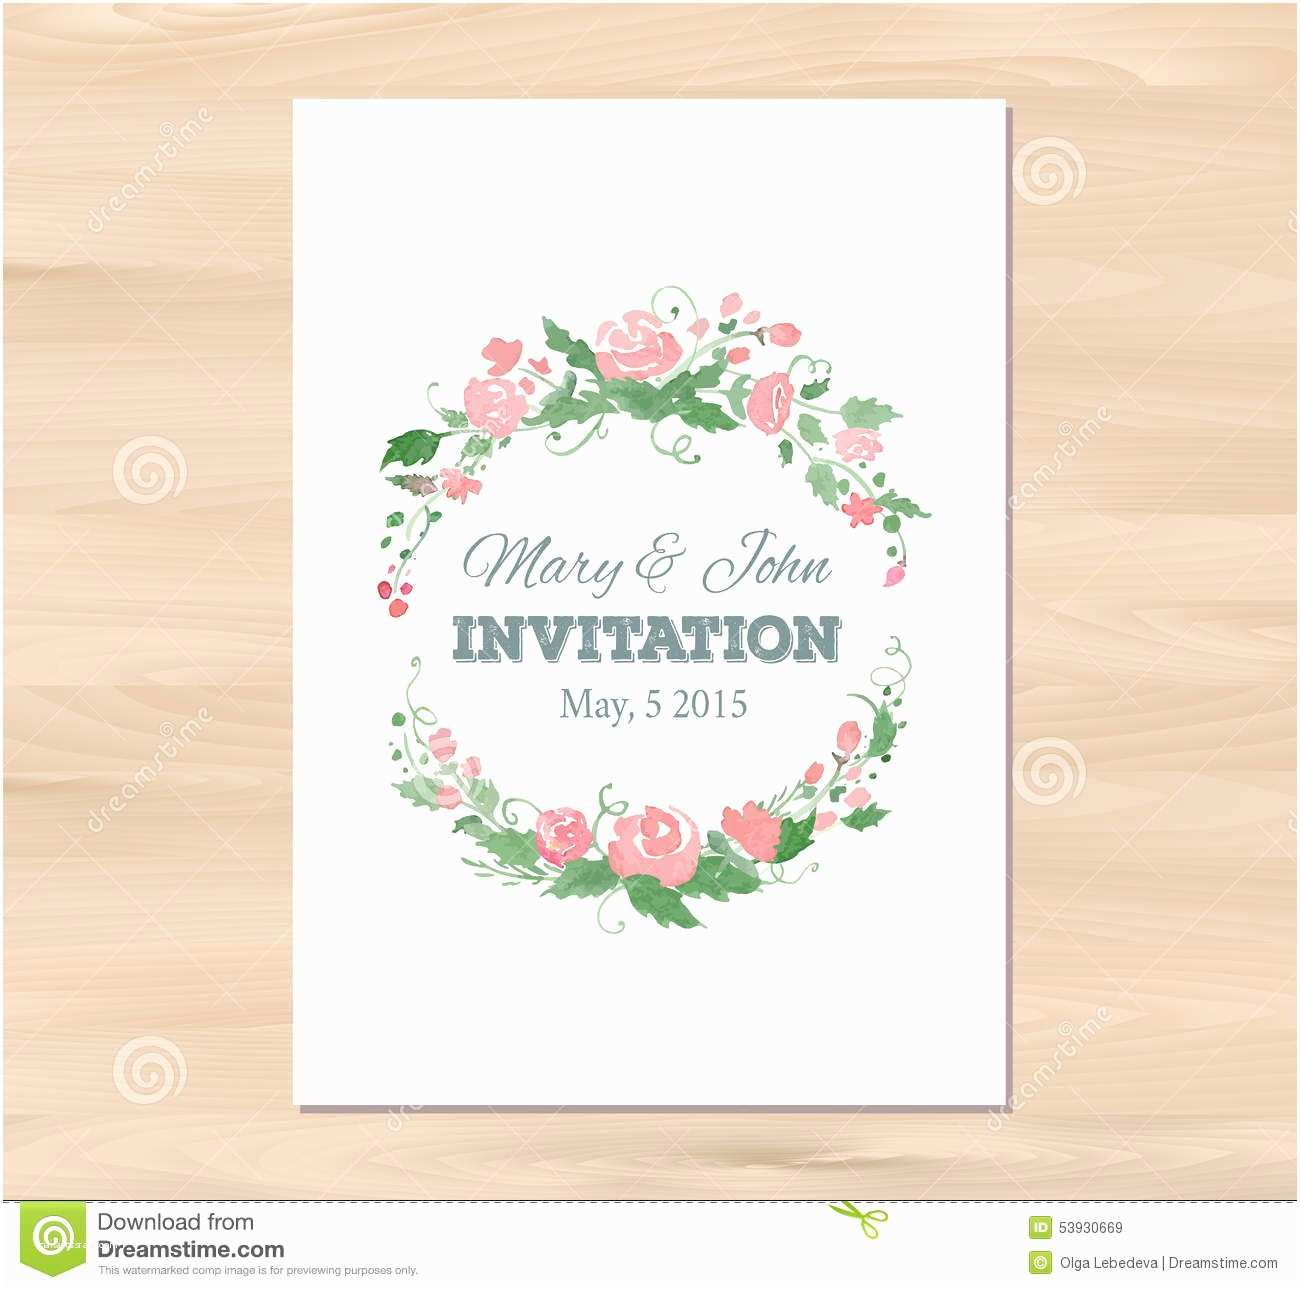 Vector Flowers for Wedding Invitations Vector Wedding Invitation with Watercolor Flowers Stock